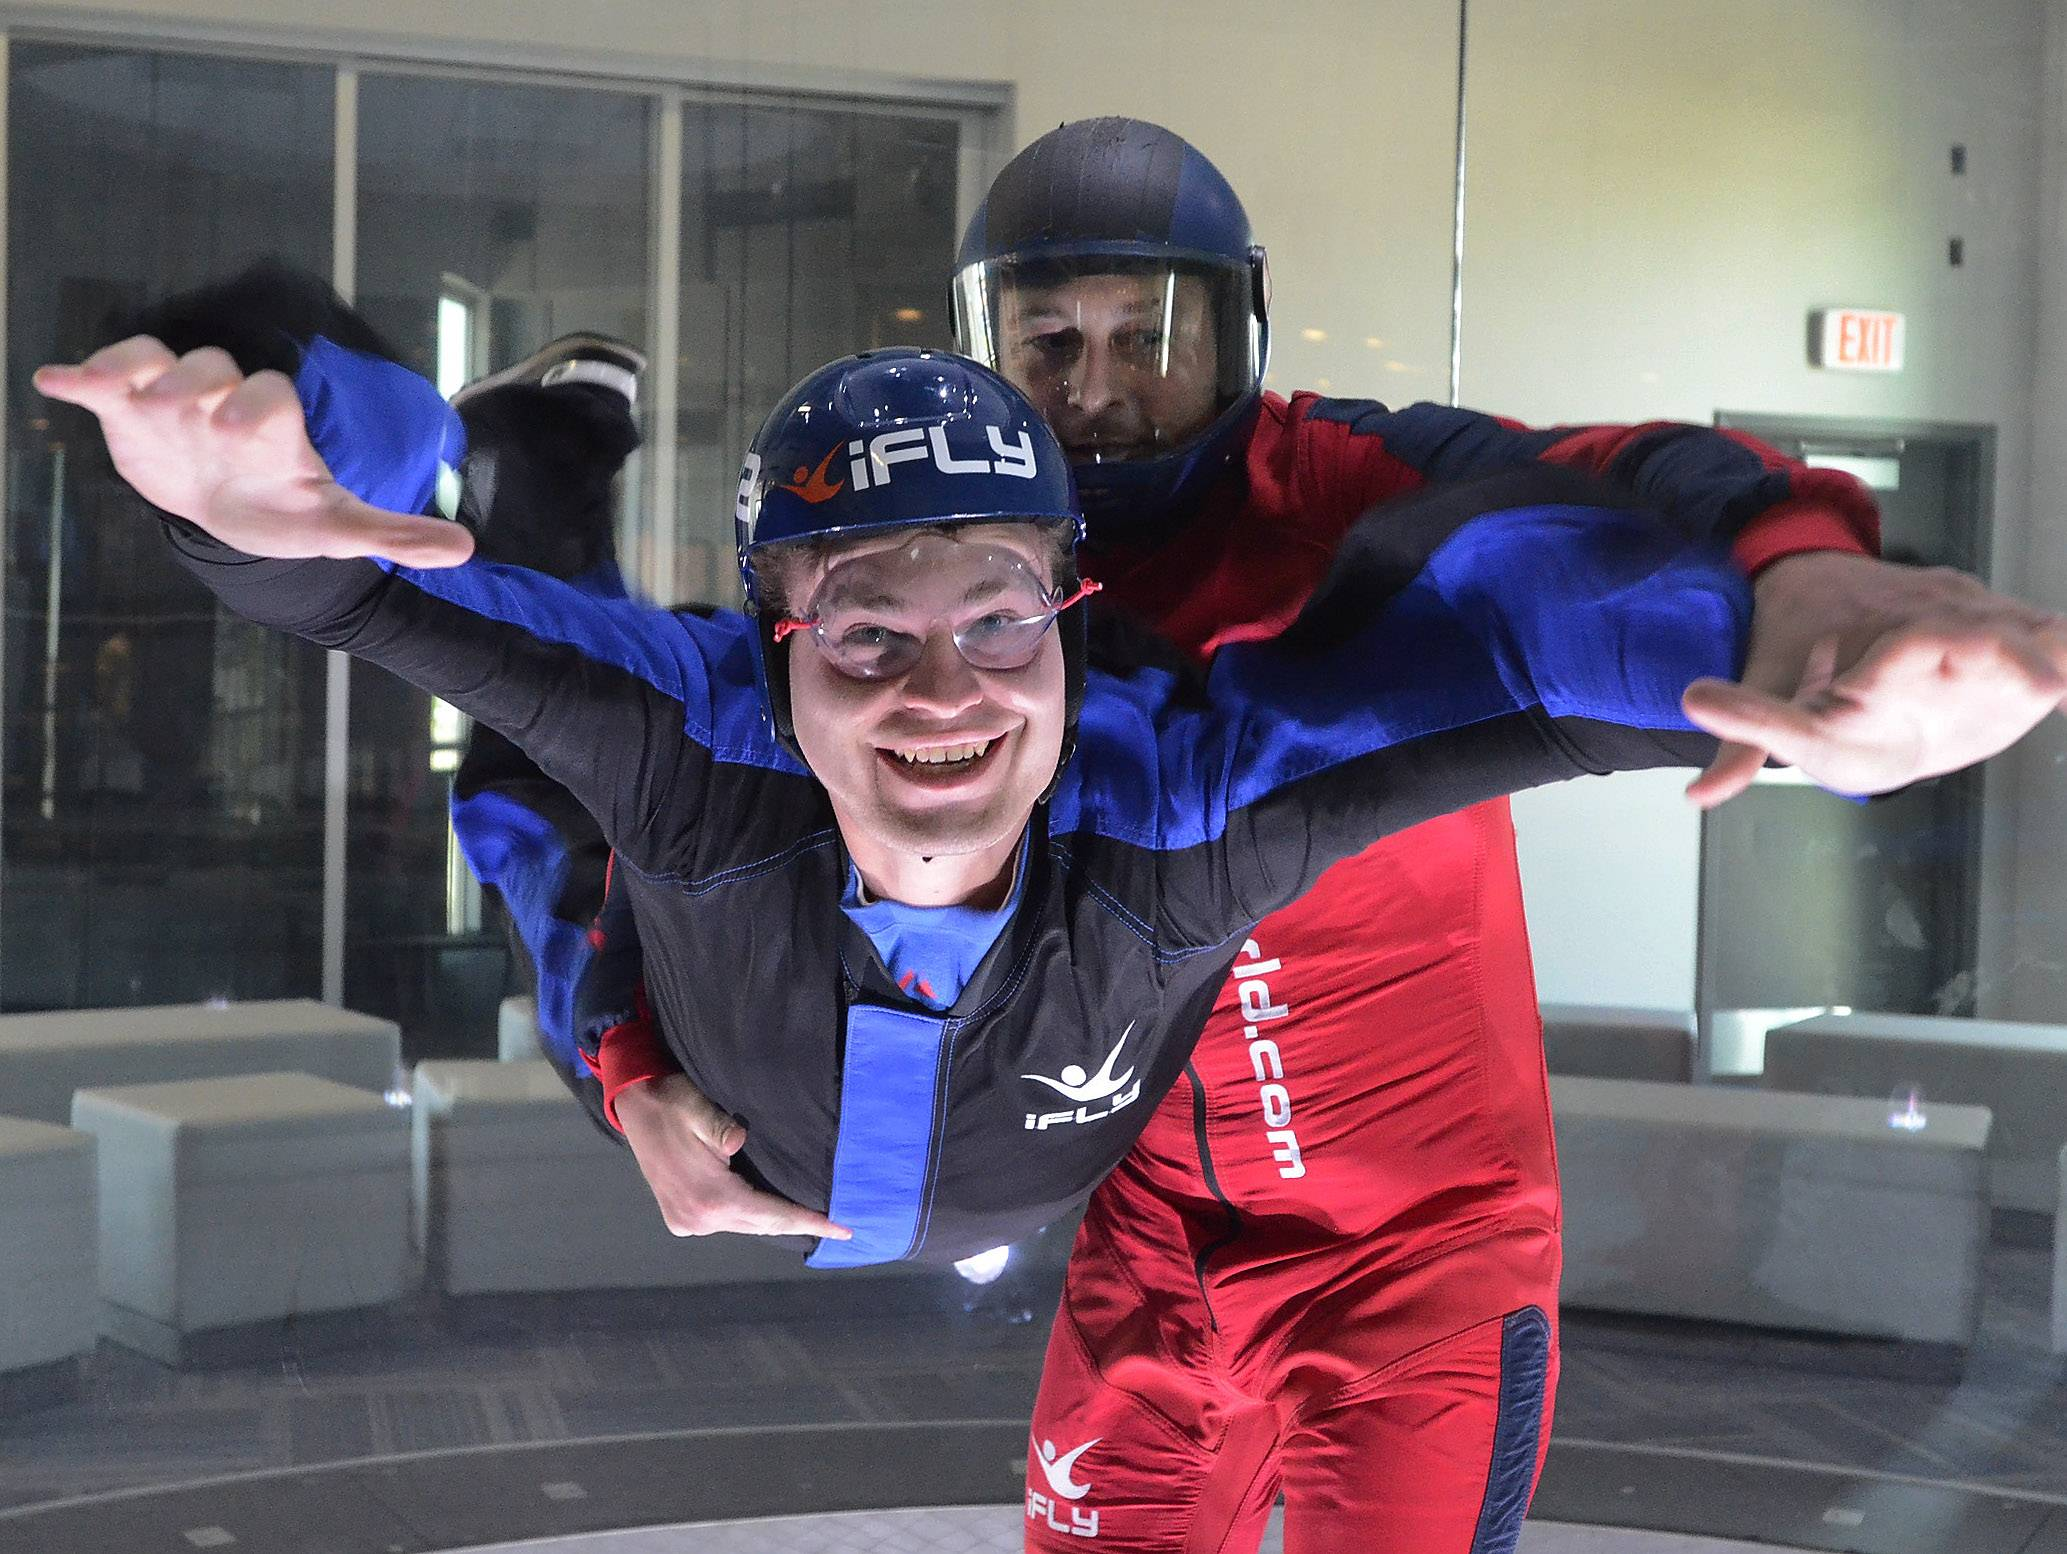 Daily Herald reporter Chris Placek takes flight, with the help of instructor Gabriel Roth, at the new iFLY indoor sky diving experience in Rosemont.